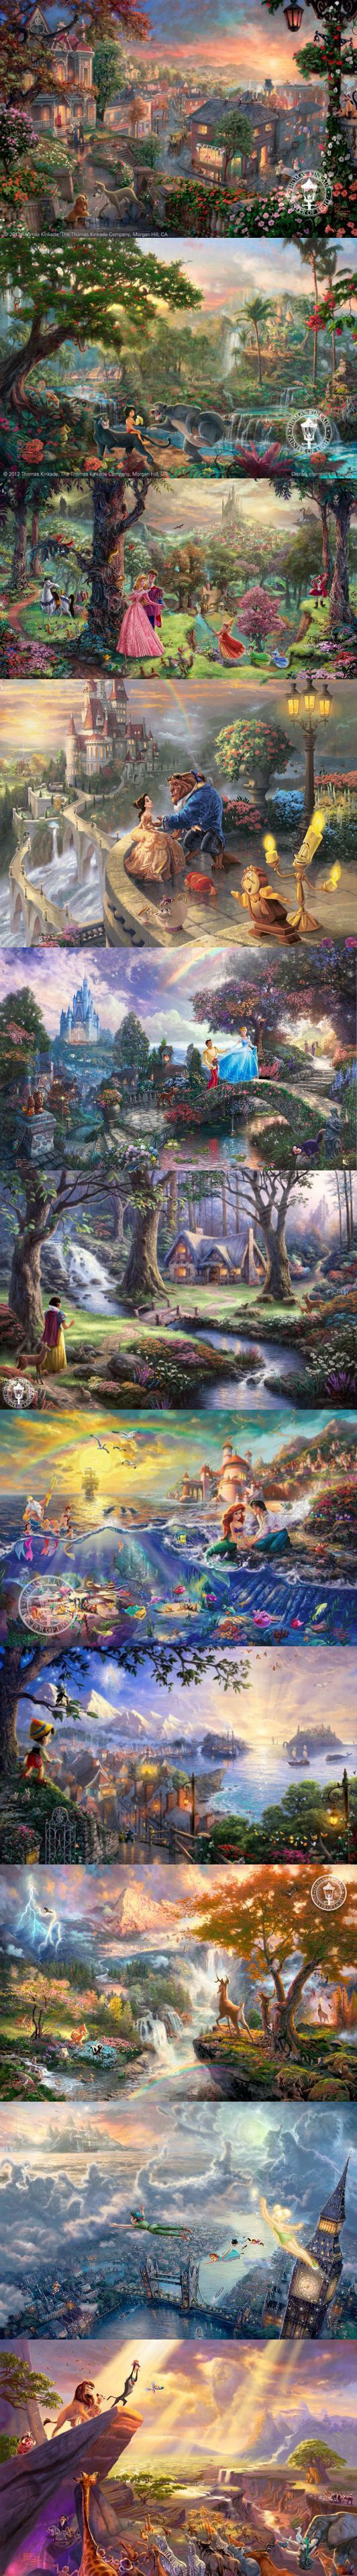 Disney Dreams Collection - Thomas Kinkade. If you look hard enough other Disney characters are hidden in different films! Jiminy Cricket is in the Lion King!